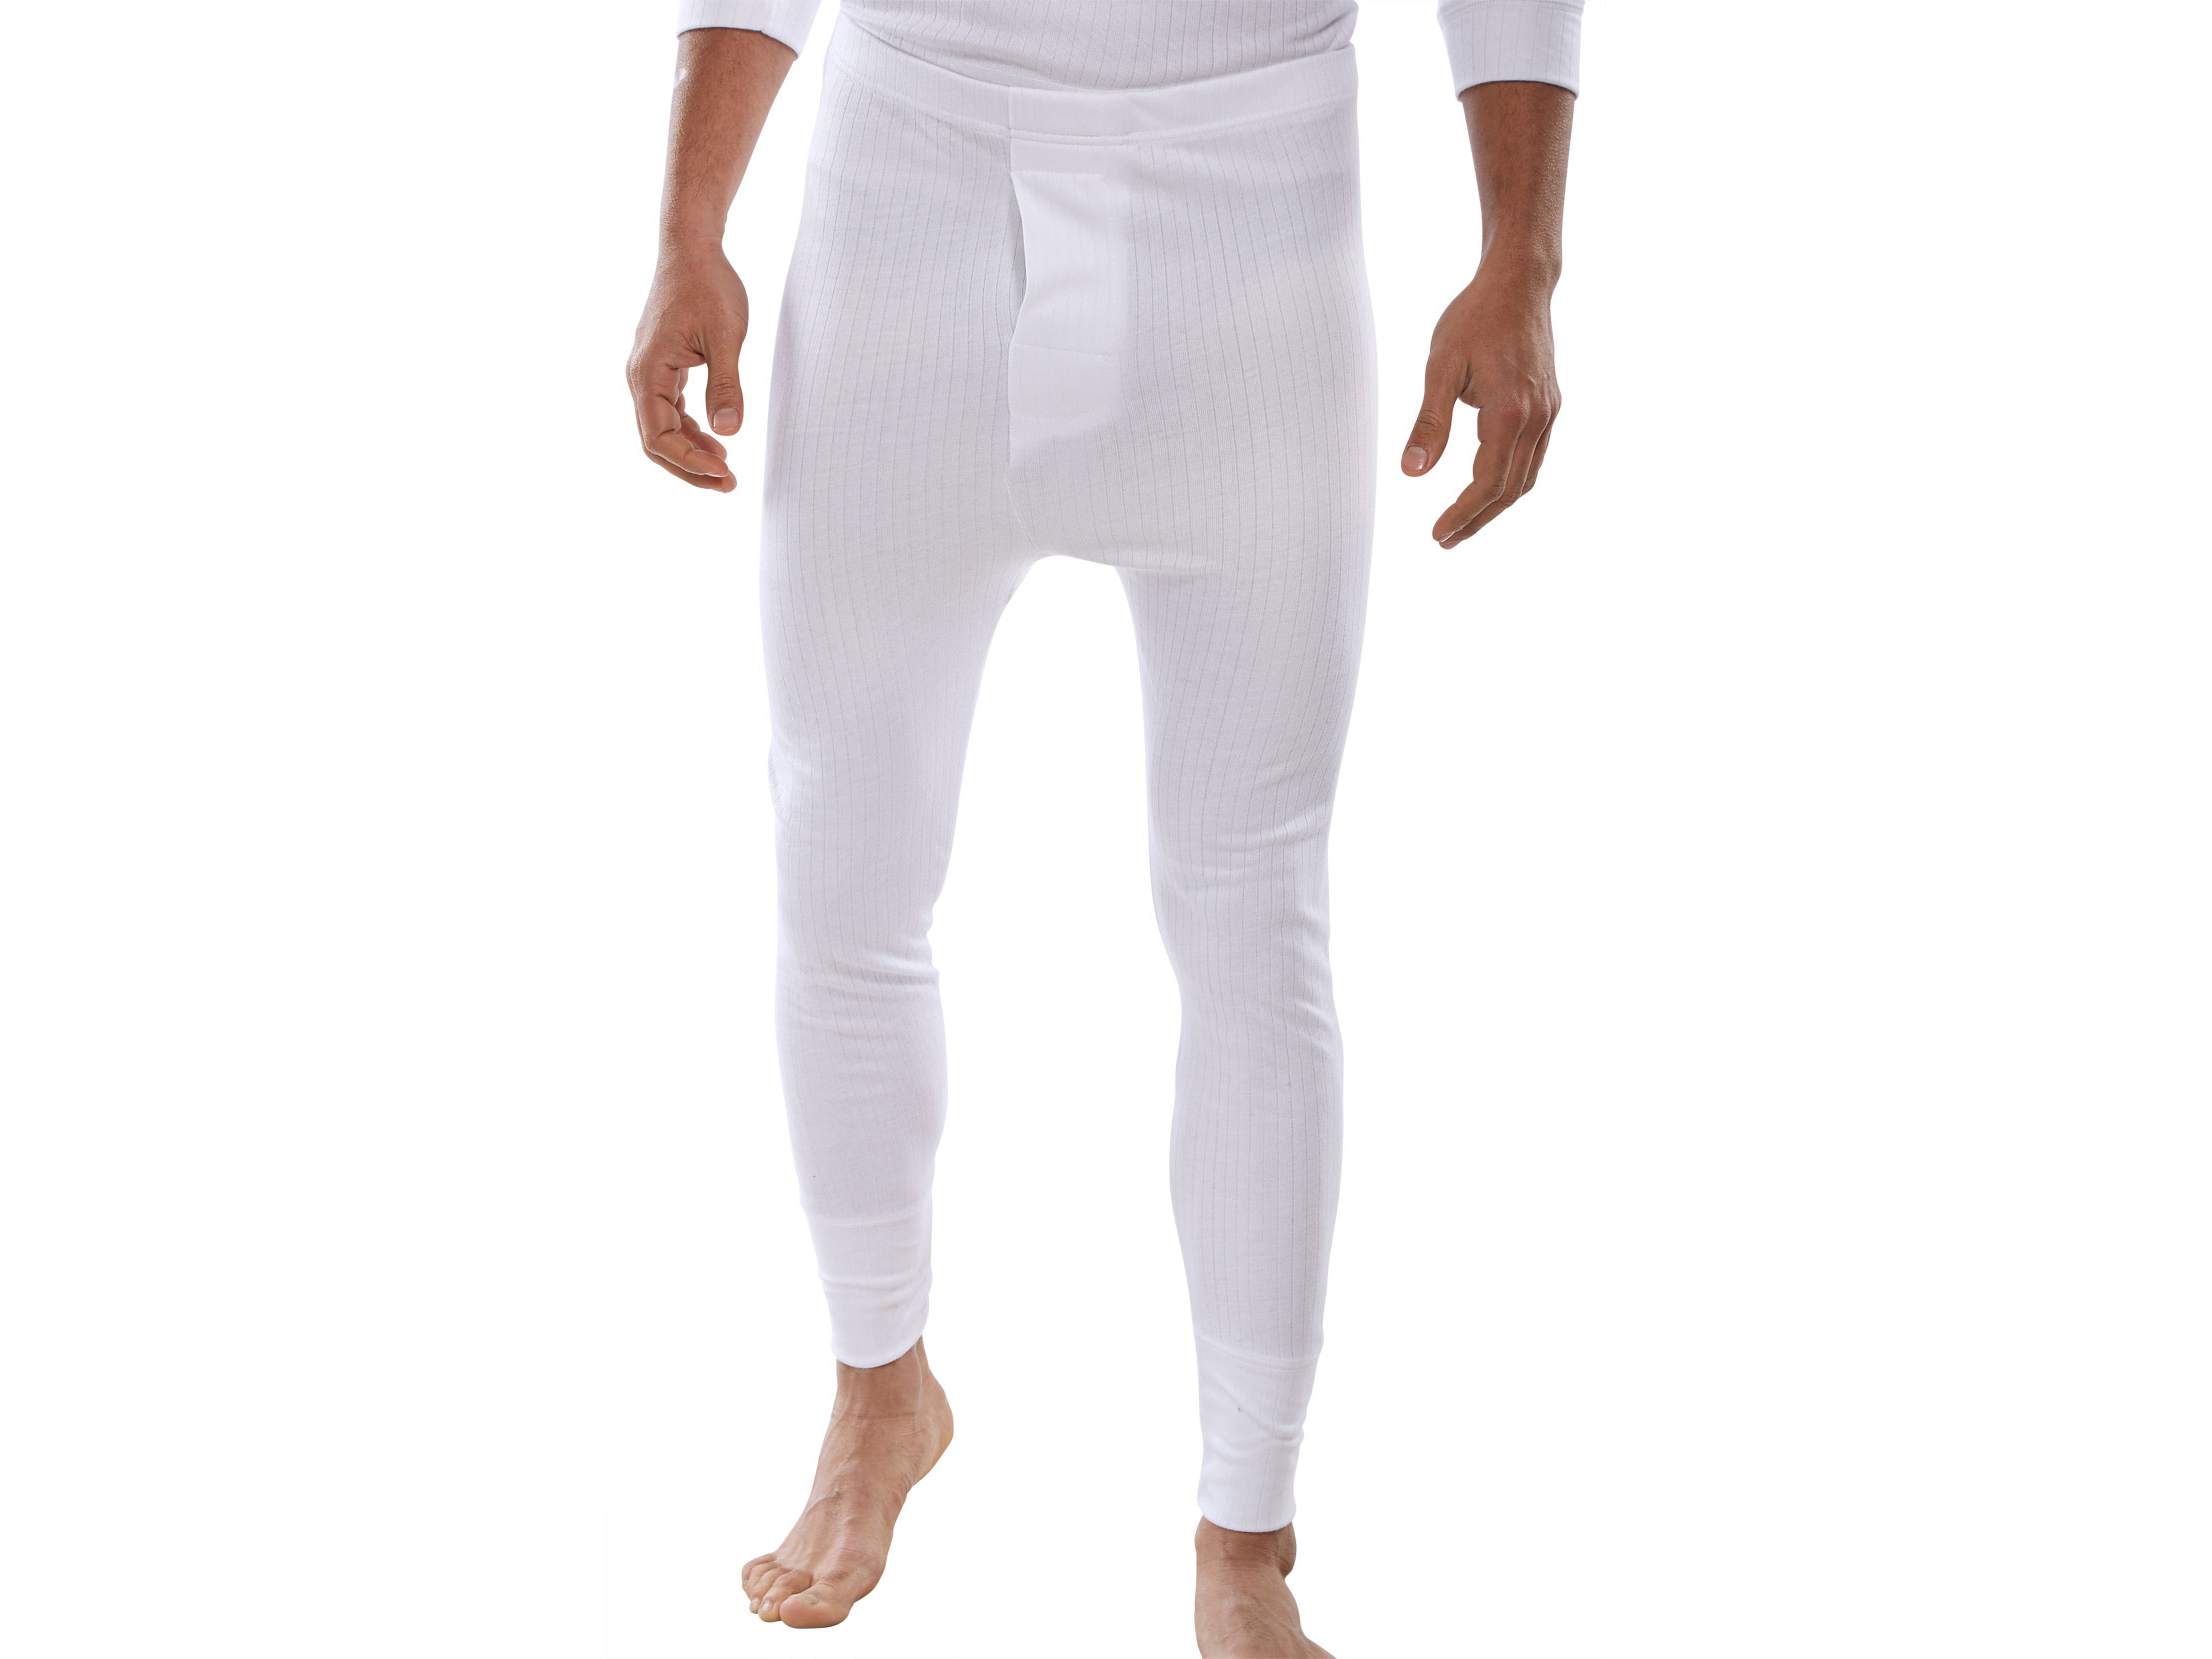 Thermal Long John Leggings w/ Good insulation & Lightweight breathable material